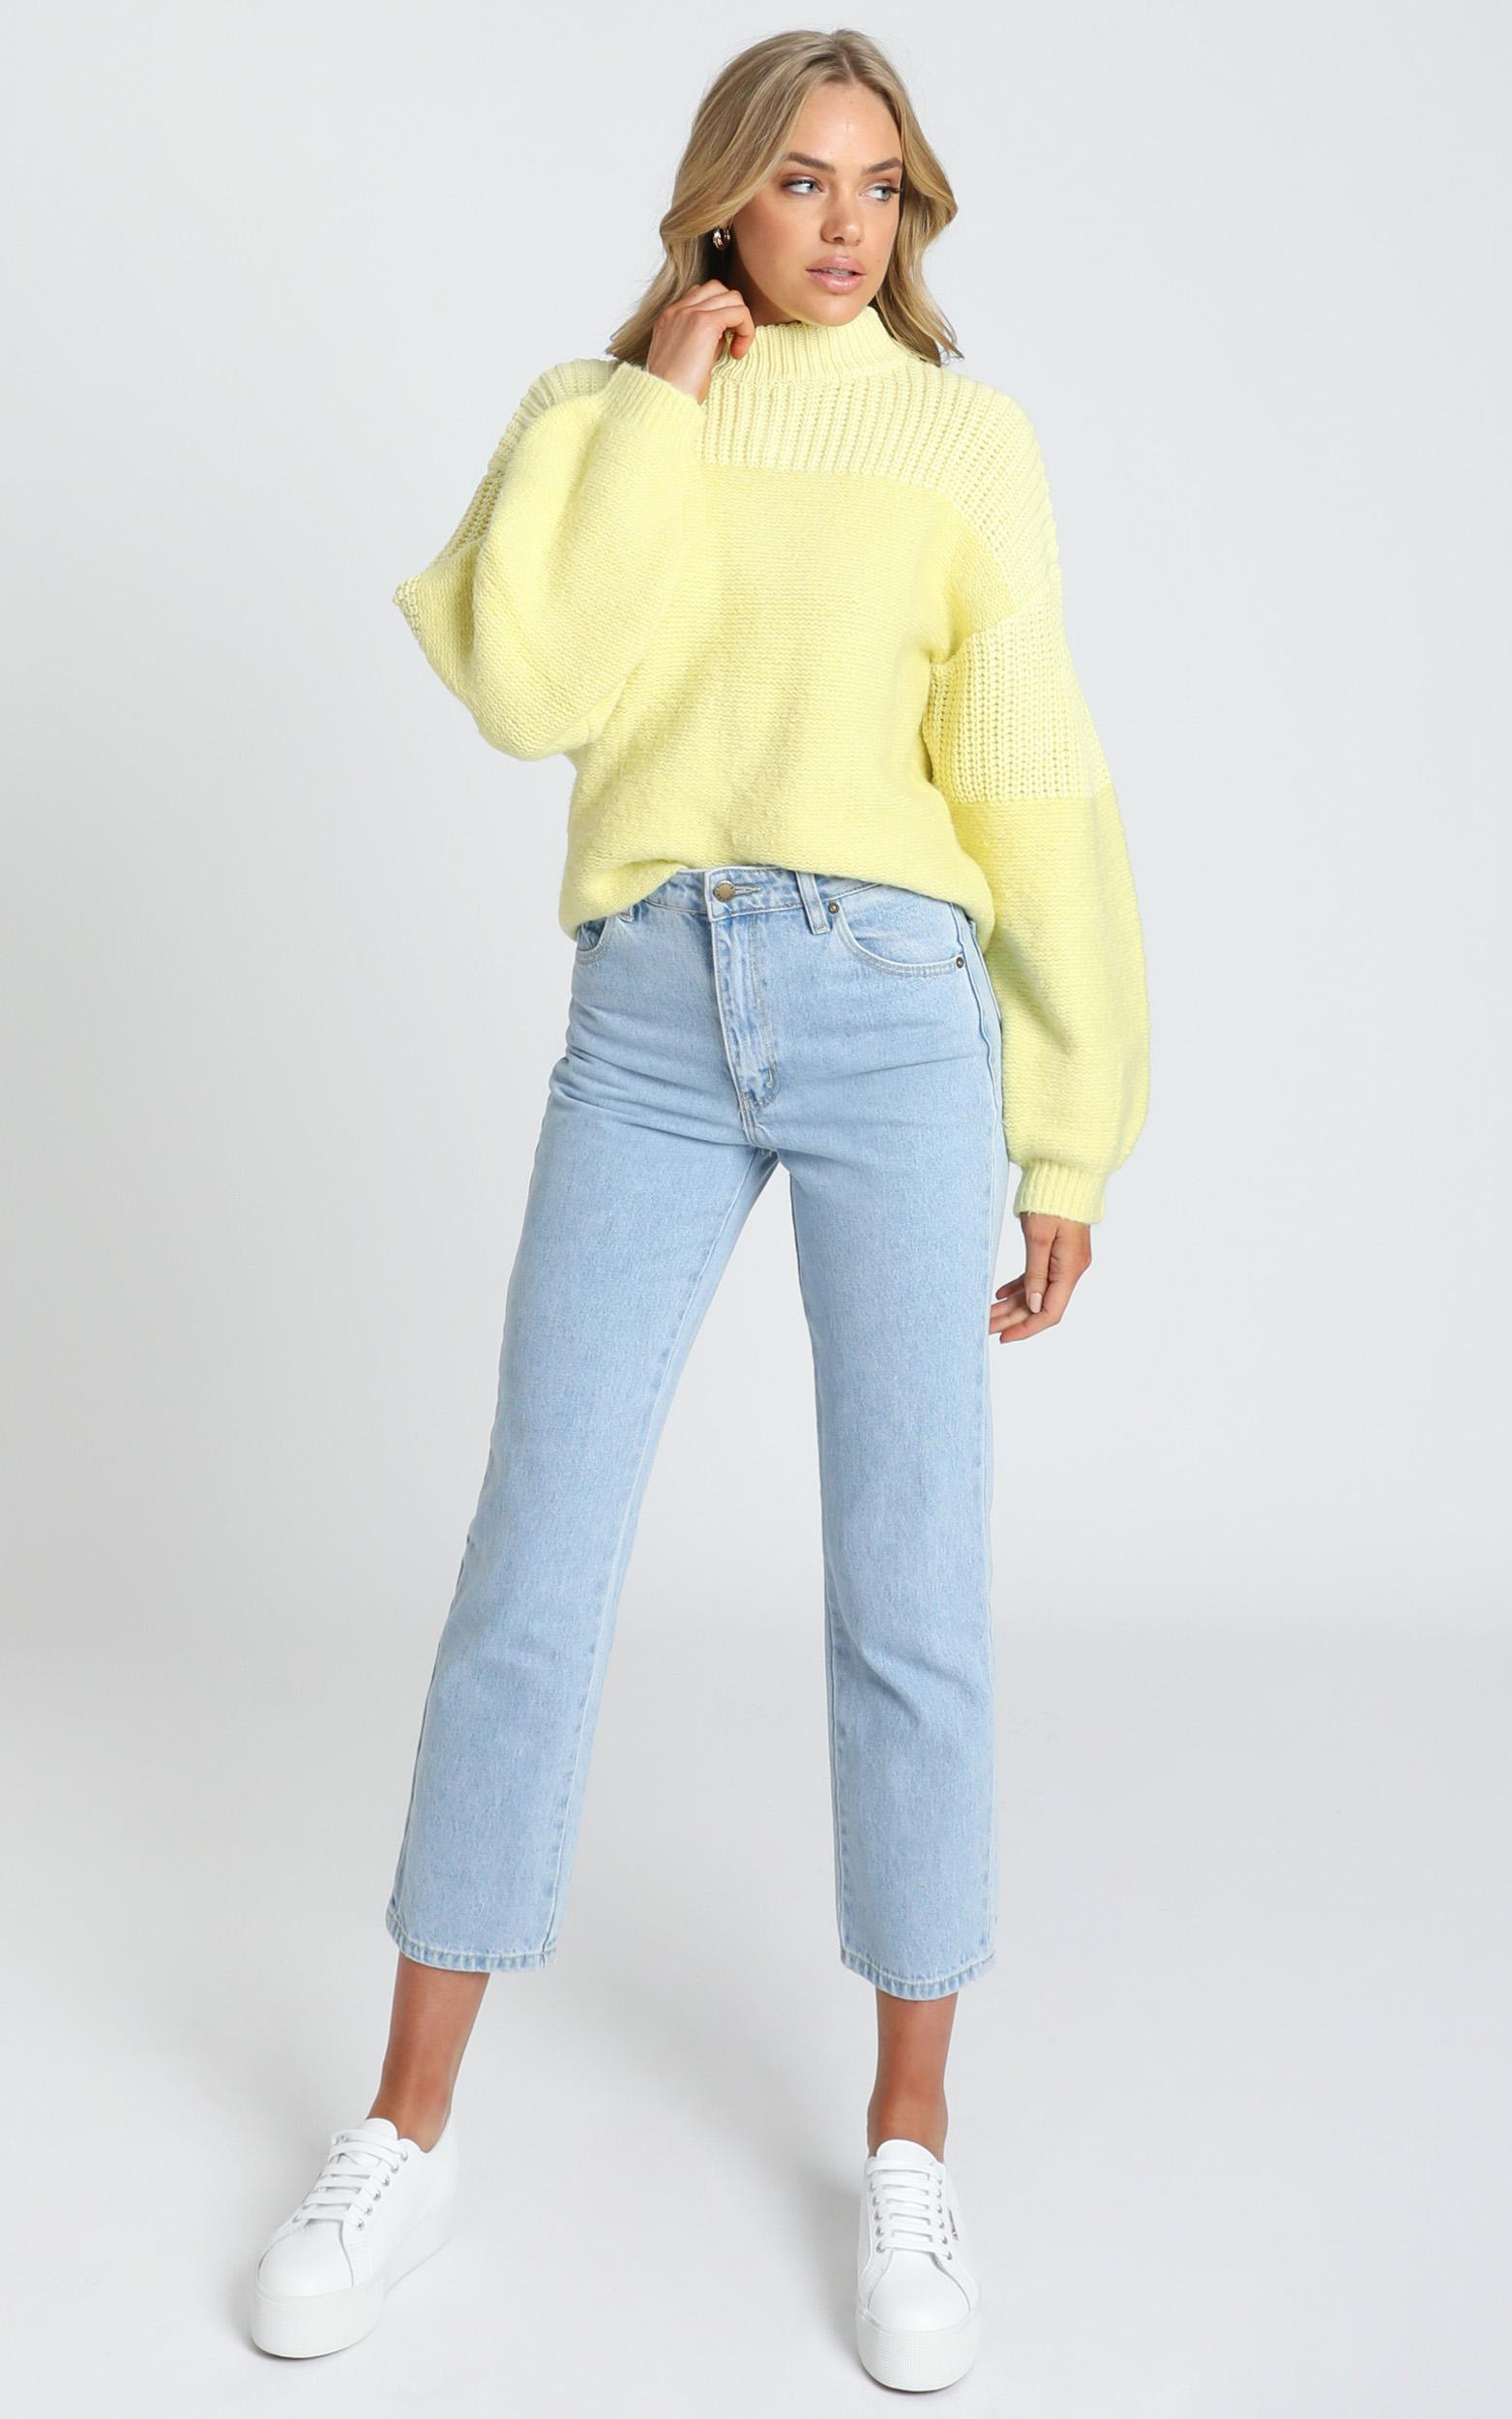 Dakota Knit Jumper in yellow - 6 (XS), Yellow, hi-res image number null